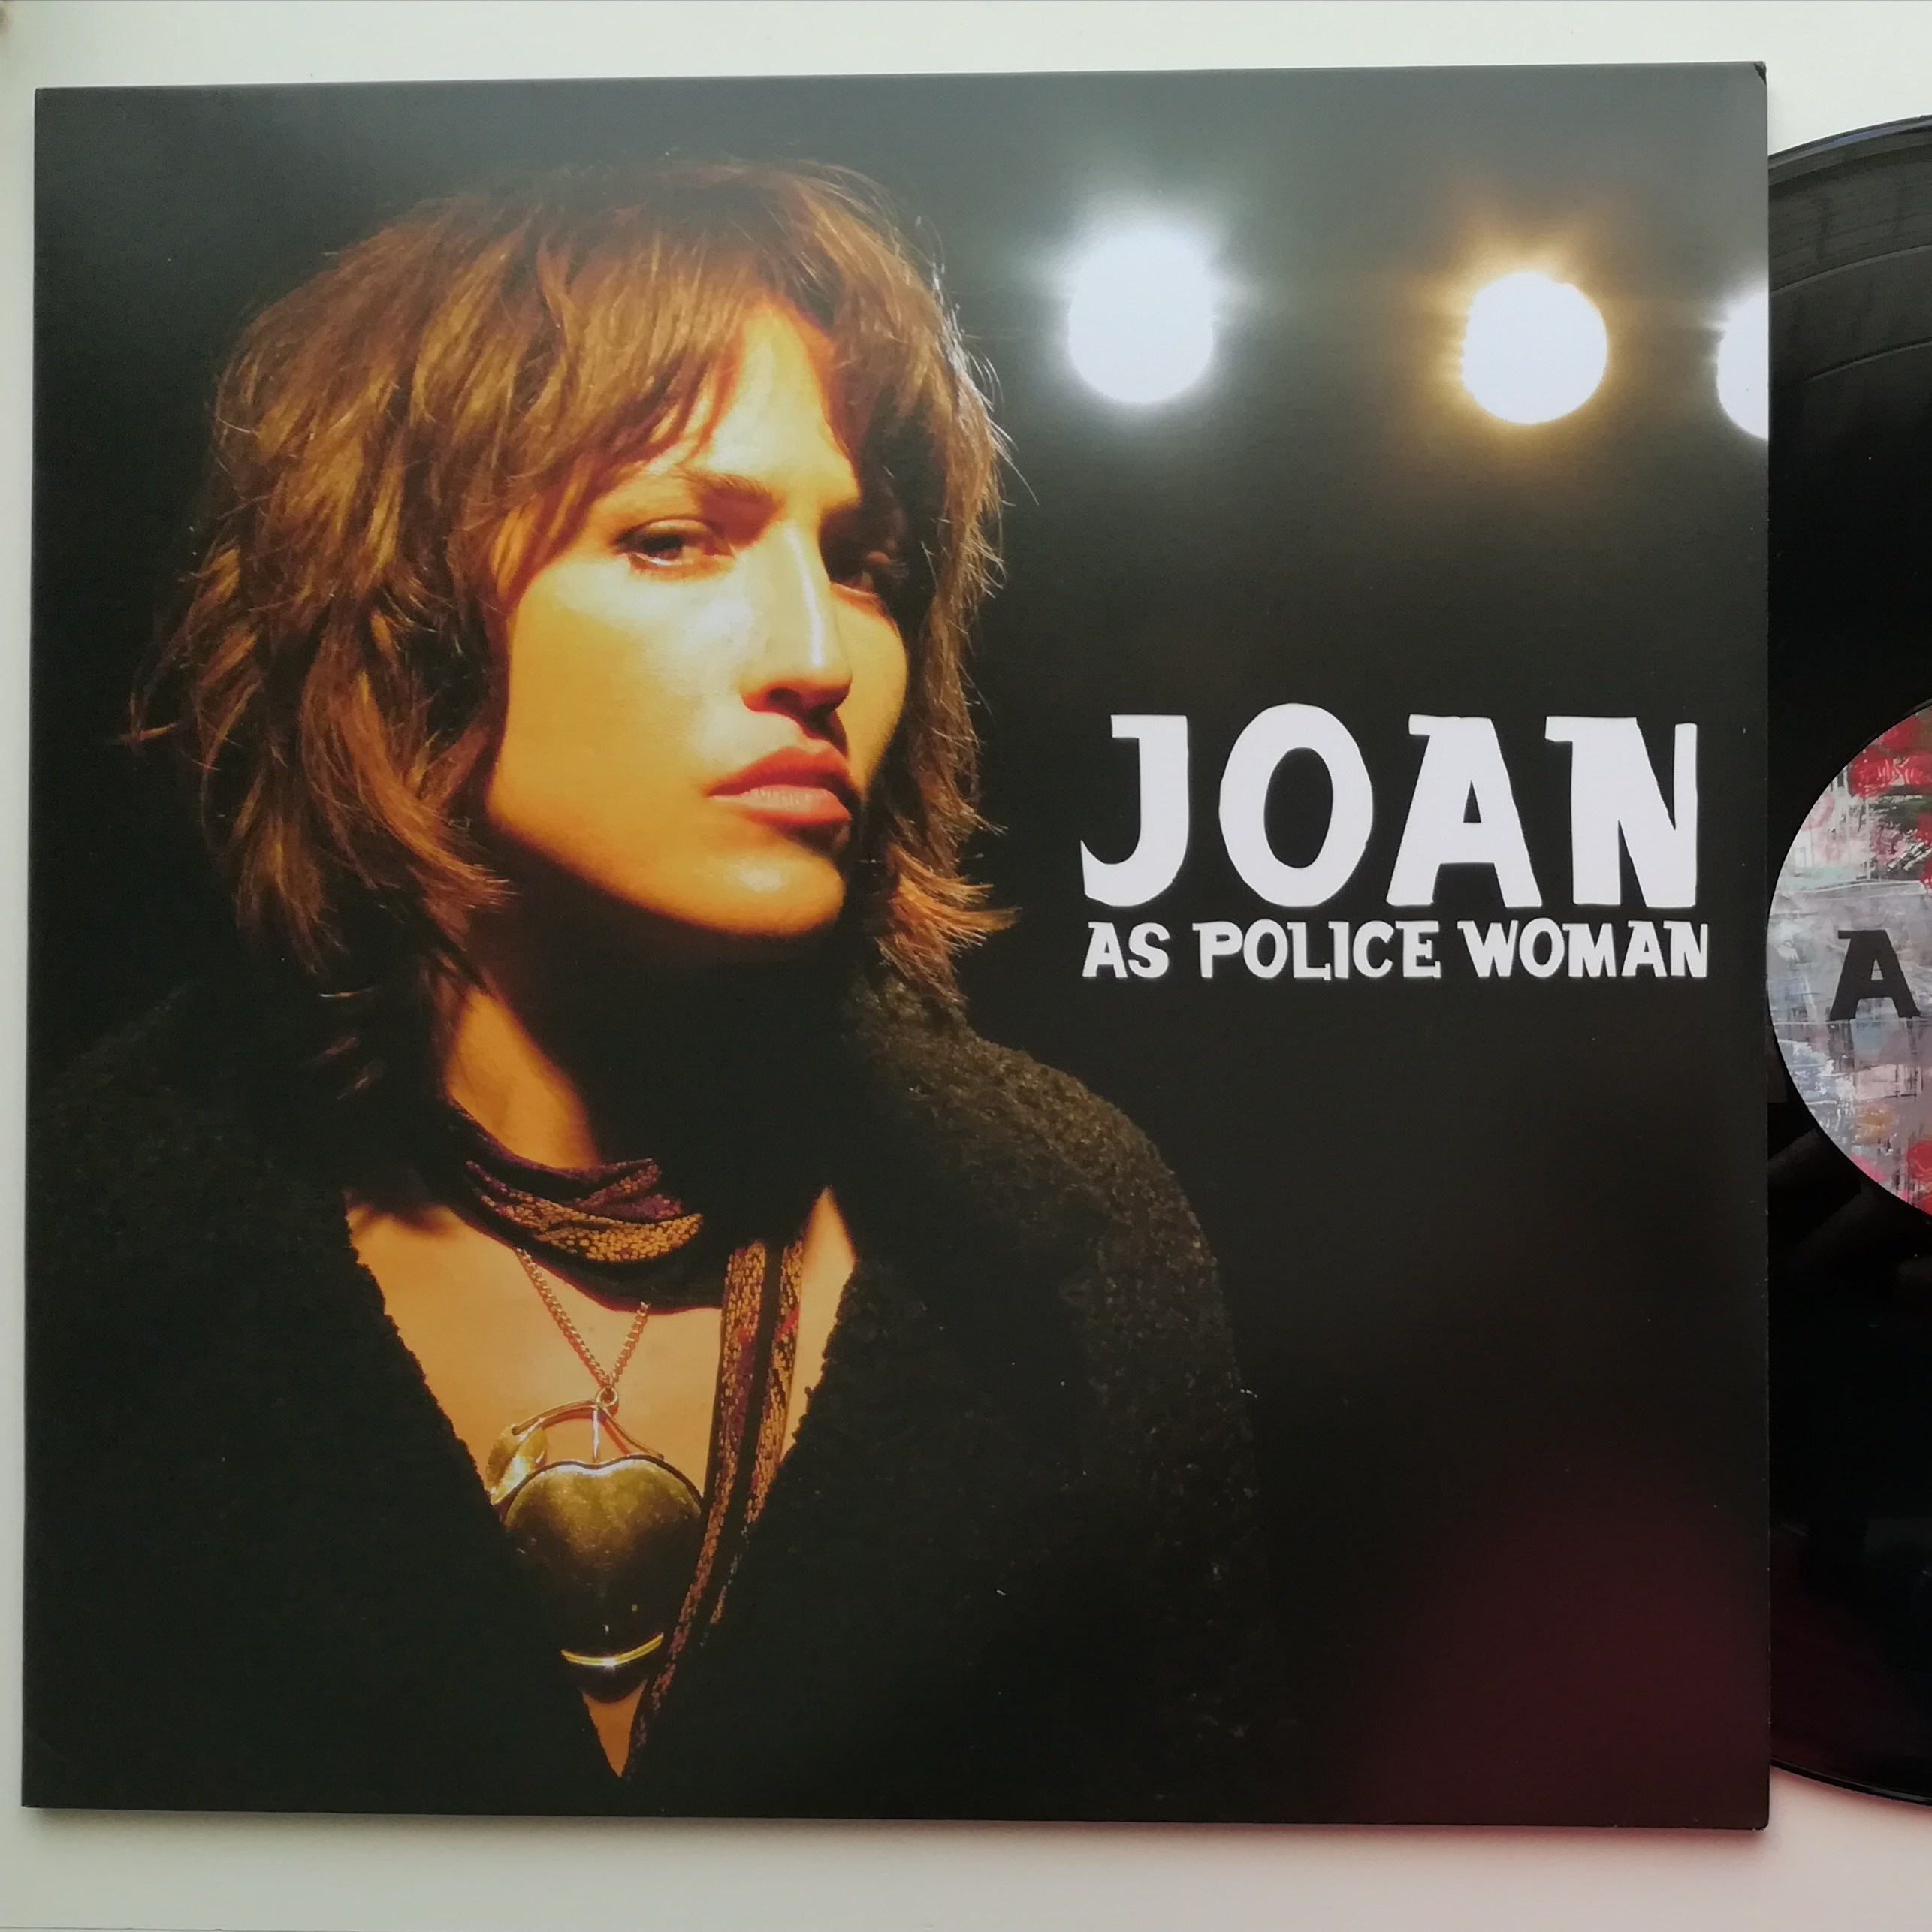 Joan as a police woman.